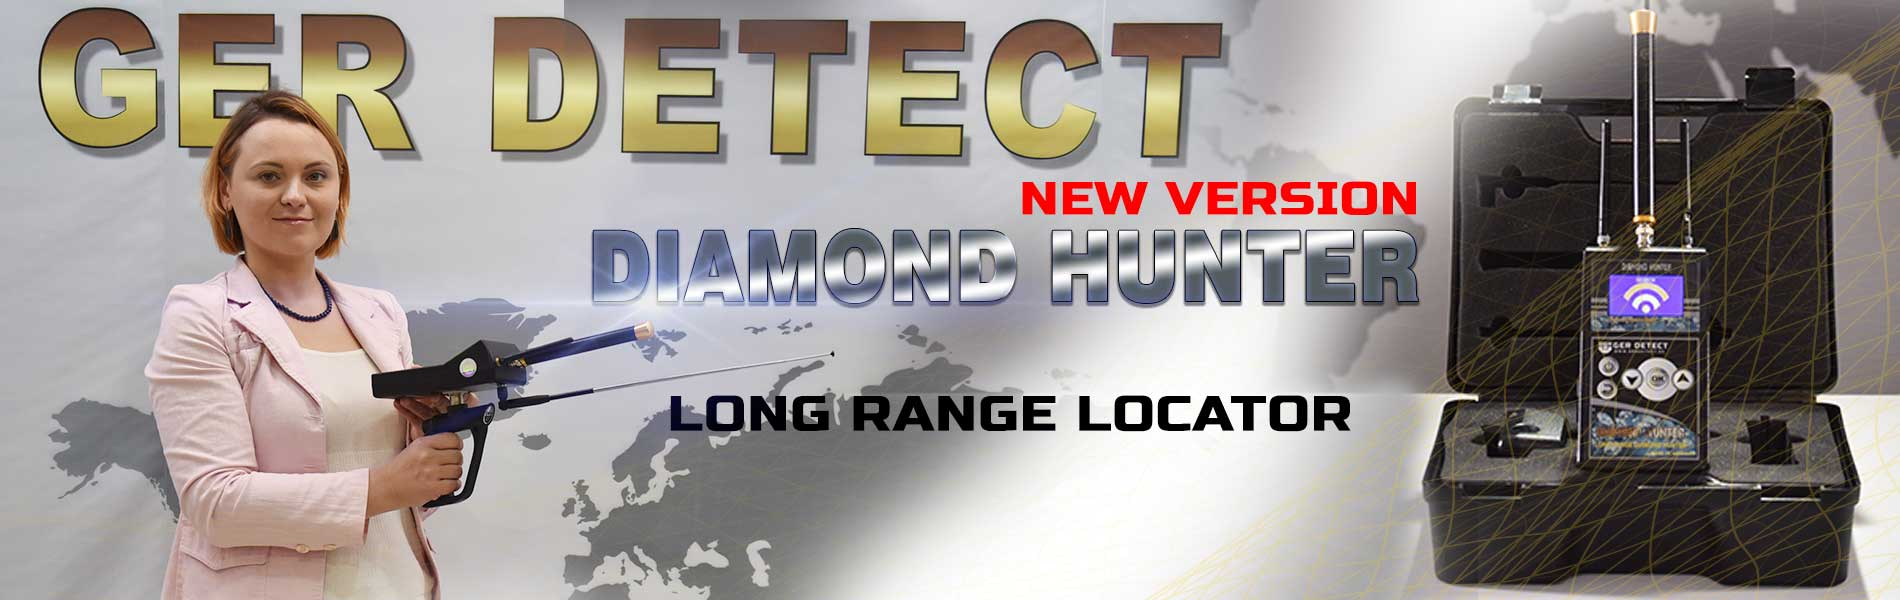 diamond-hunter-diamond-detector